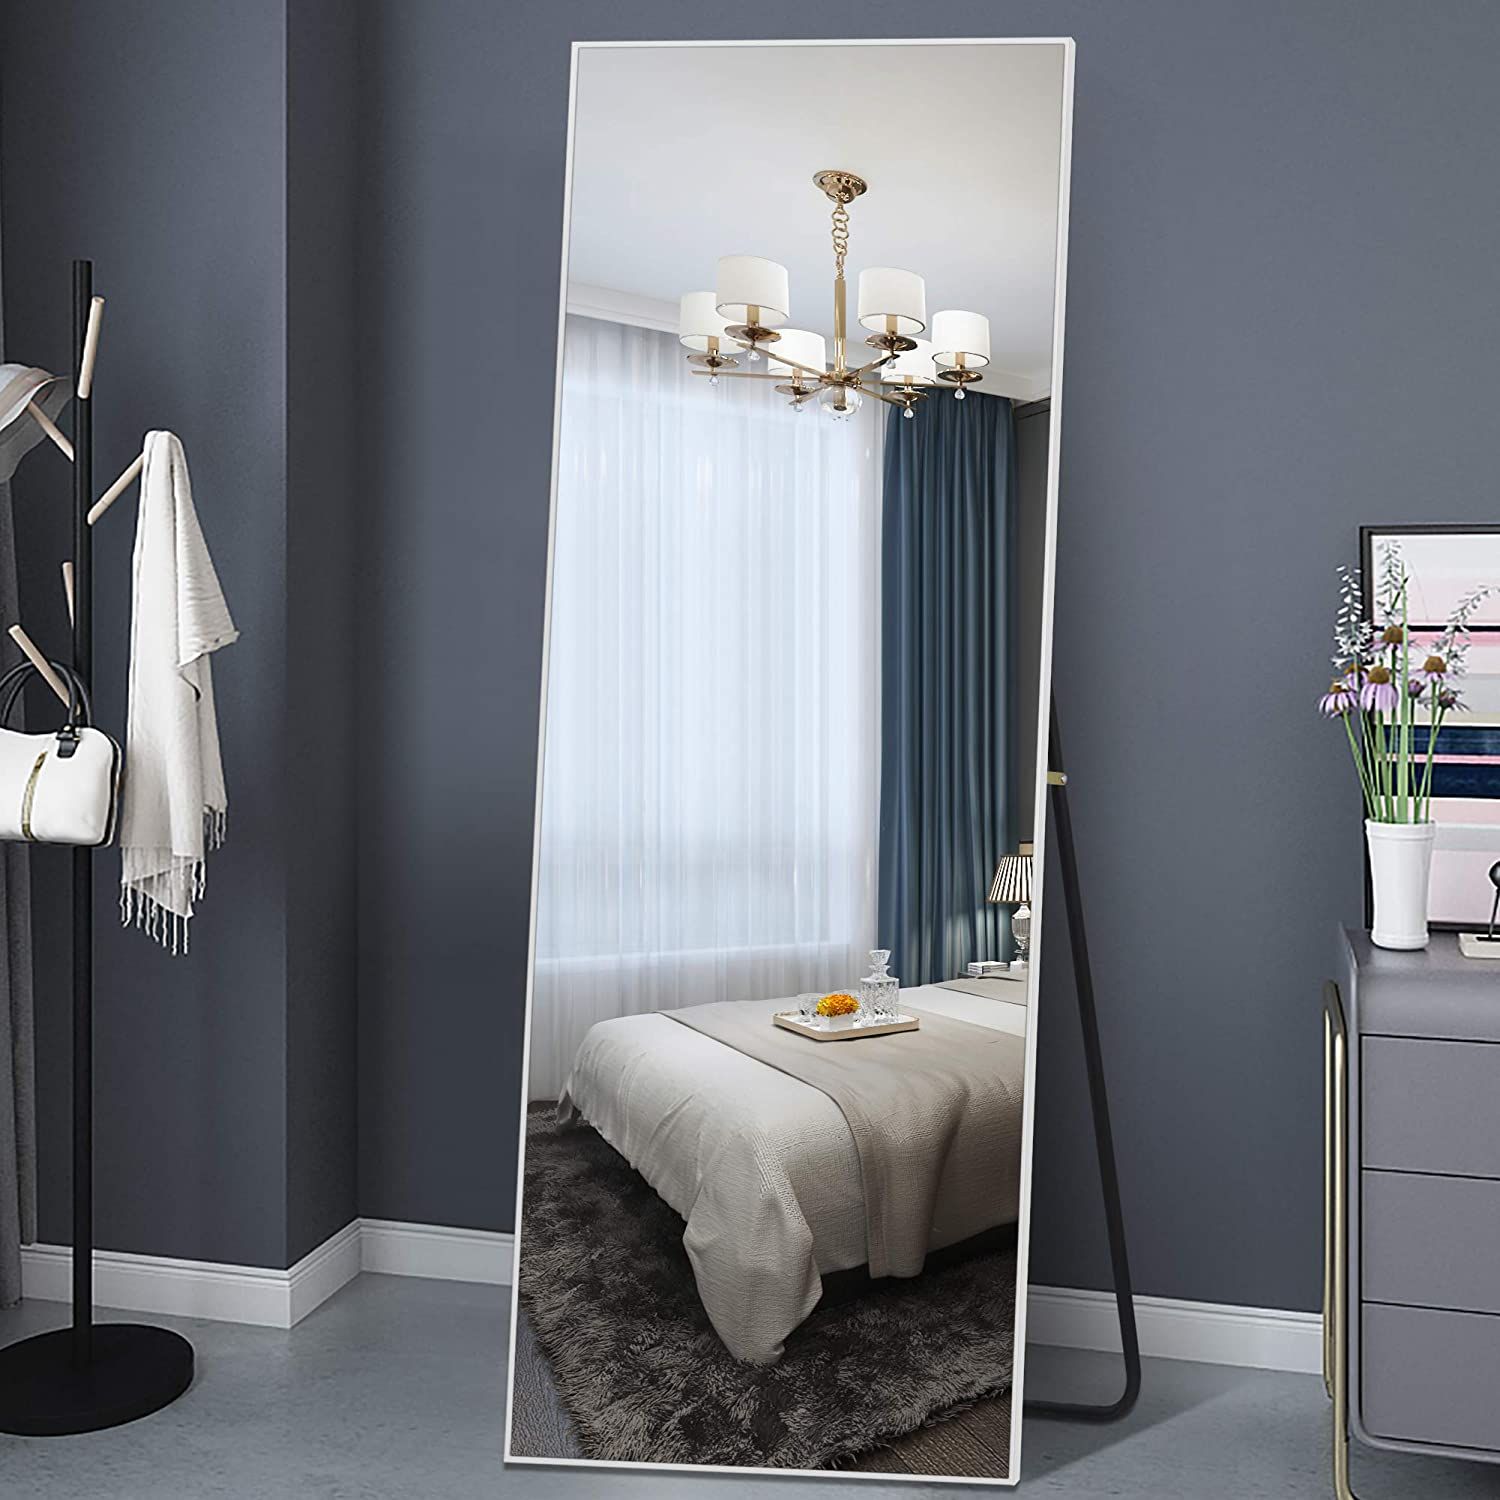 Dressing Mirror 65x22 Aluminum Alloy Floor Mirror Thin Frame with Bracket BEHOME Full Length Mirror Standing Mirror Full Body Mirror Decor Mirror-Black